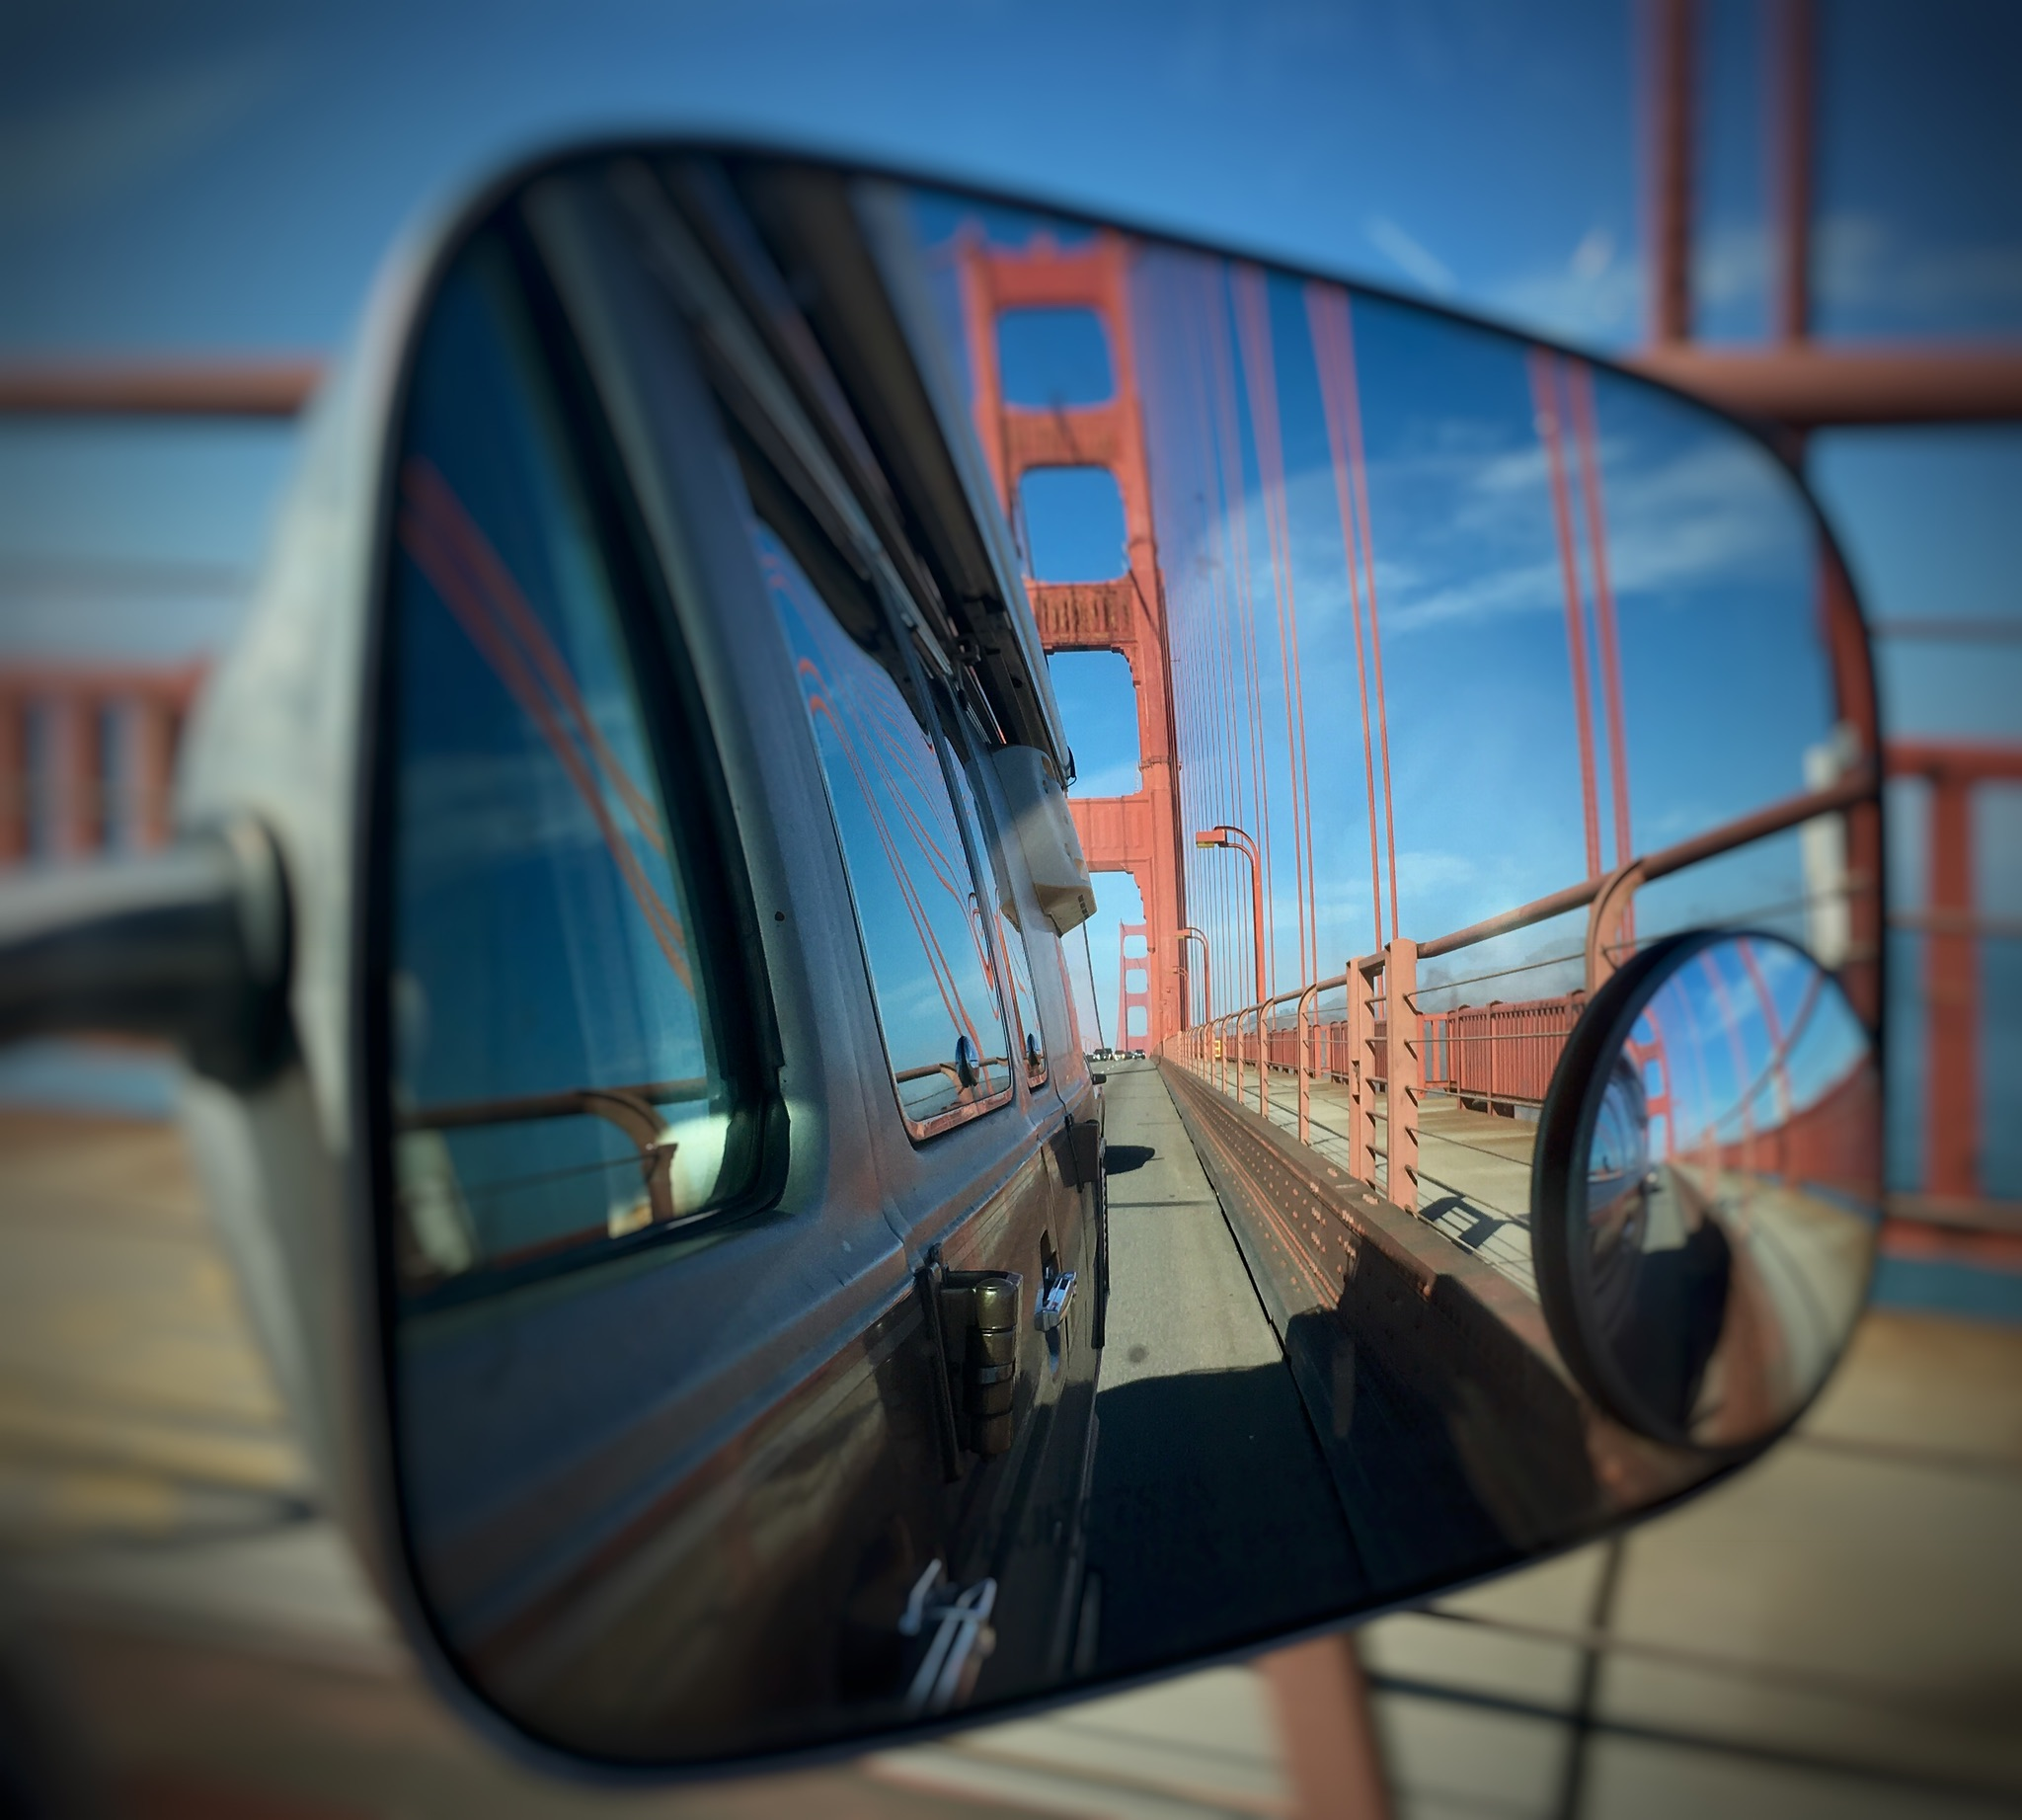 Huch, hallo Golden Gate Bridge!